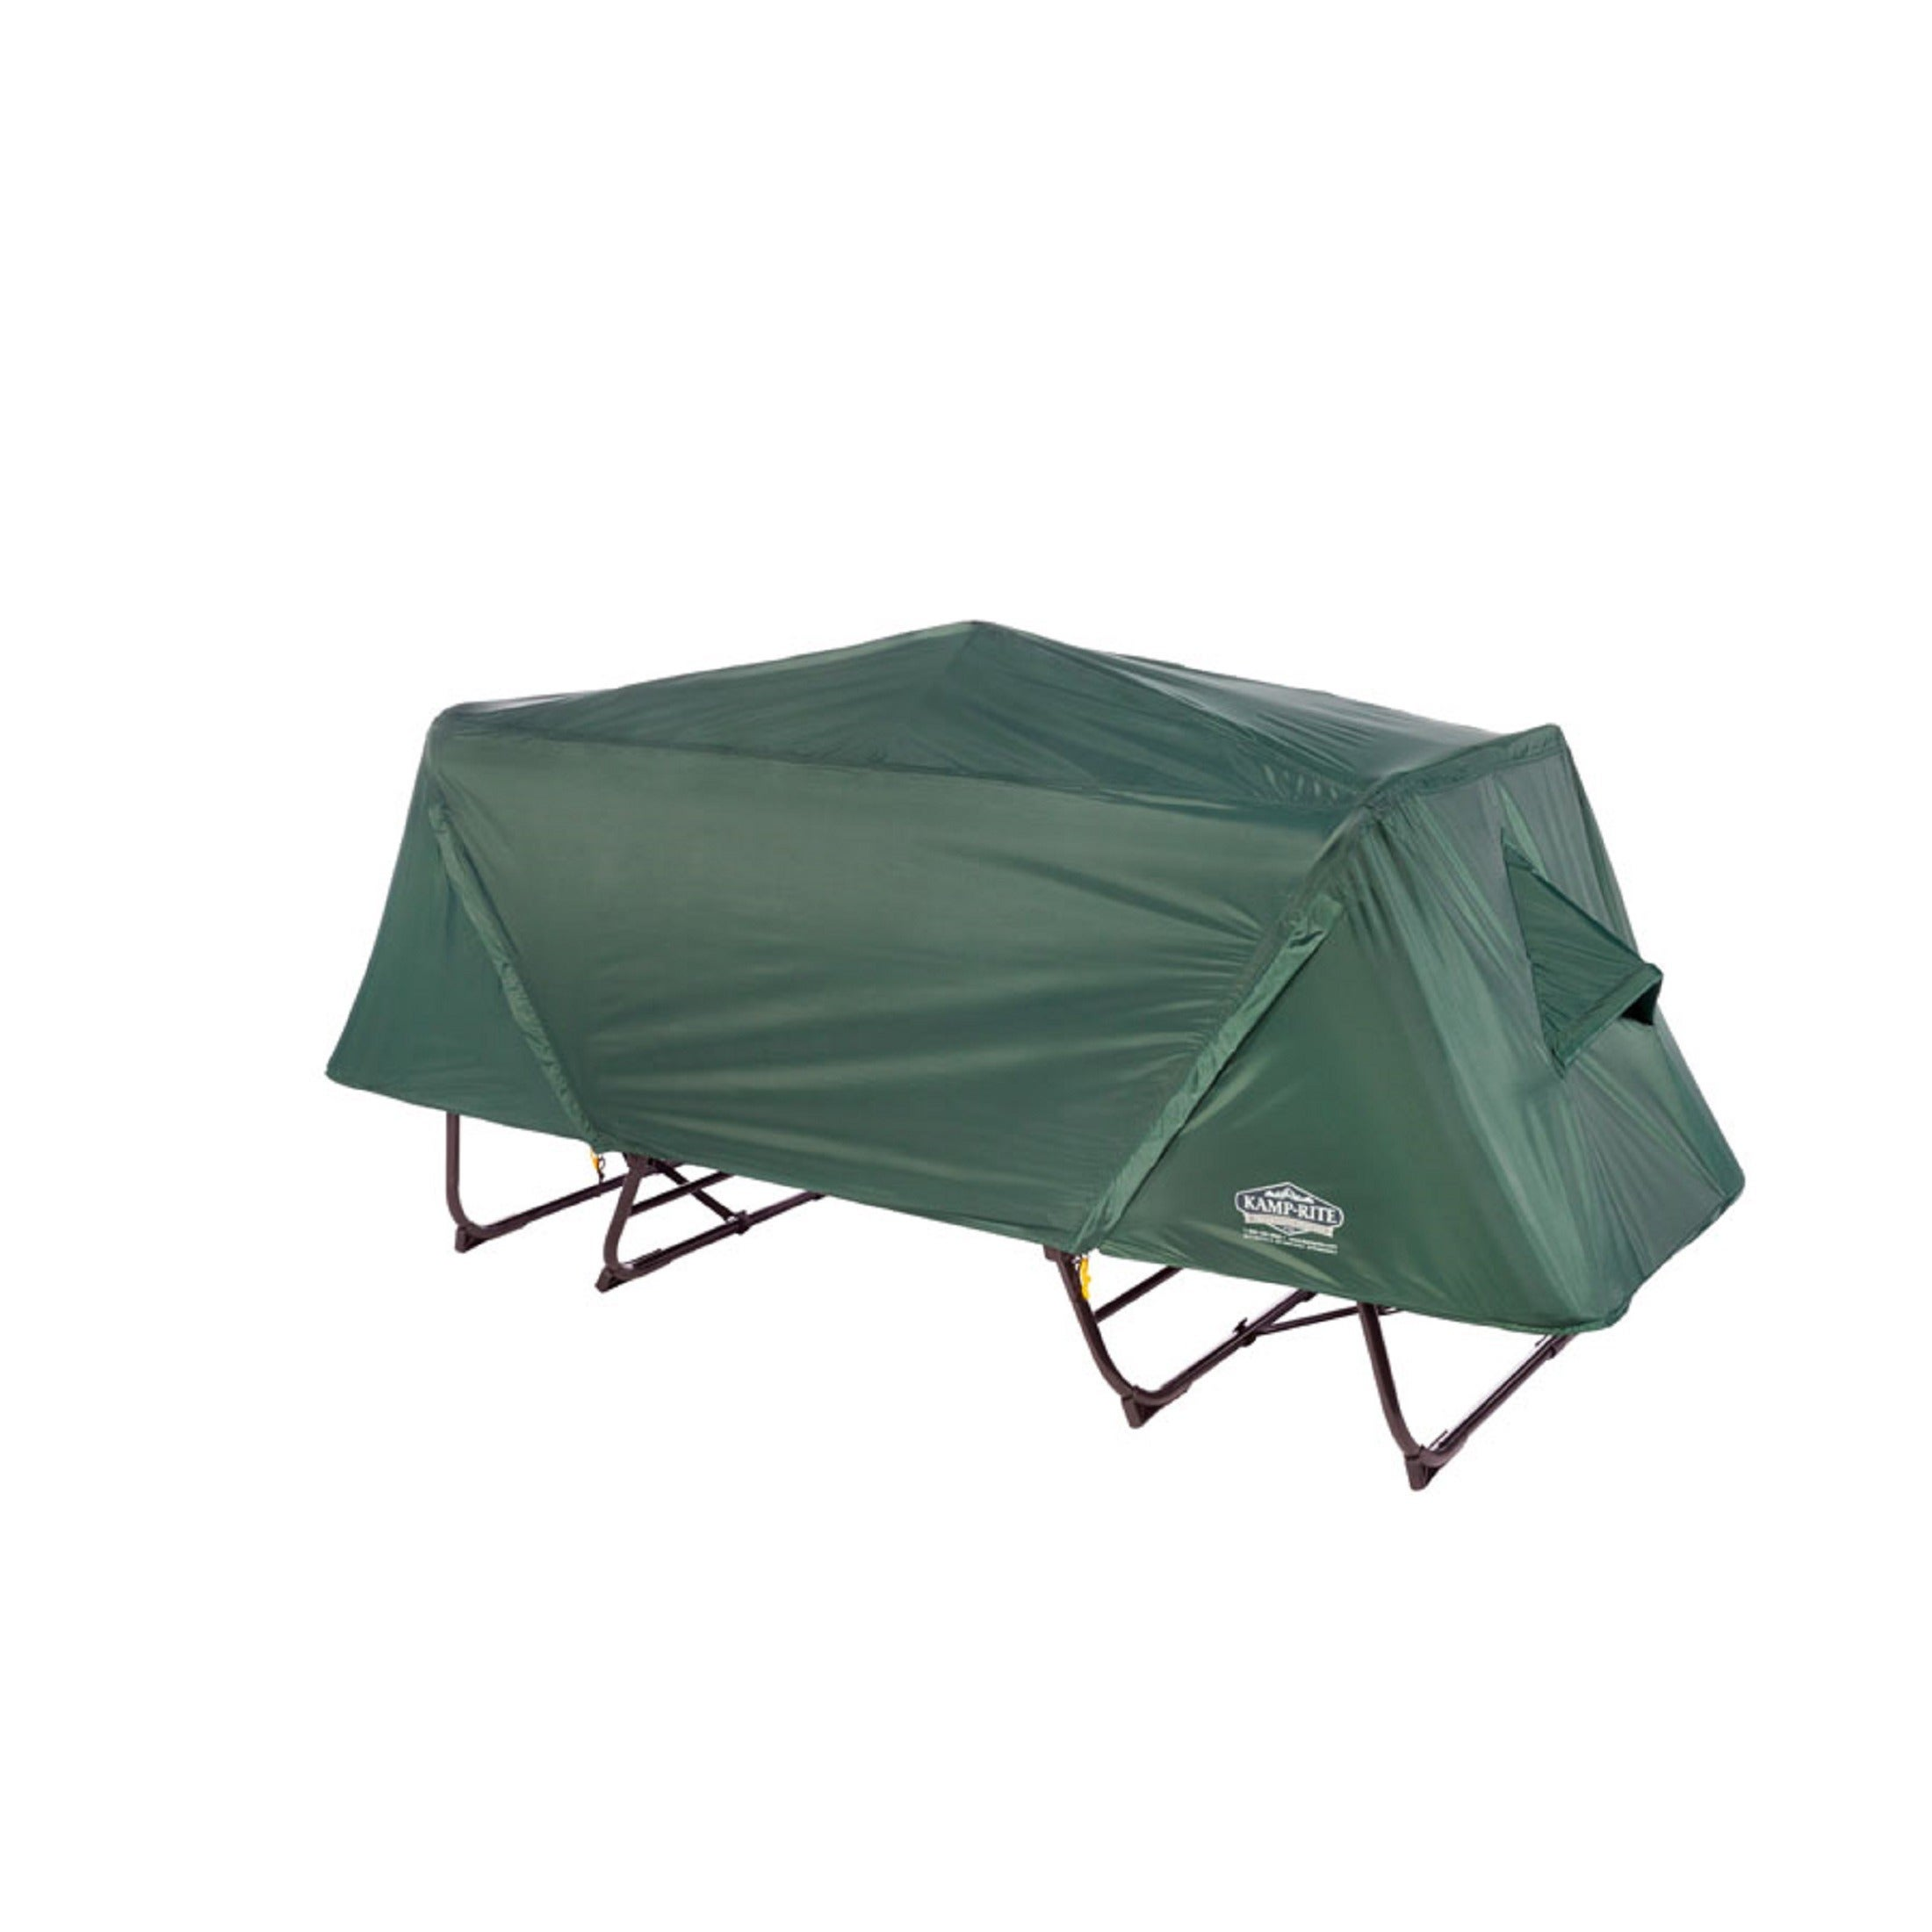 K&-Rite Oversize Tent-cot with Rainfly - Free Shipping Today - Overstock.com - 14906418  sc 1 st  Overstock.com & Kamp-Rite Oversize Tent-cot with Rainfly - Free Shipping Today ...